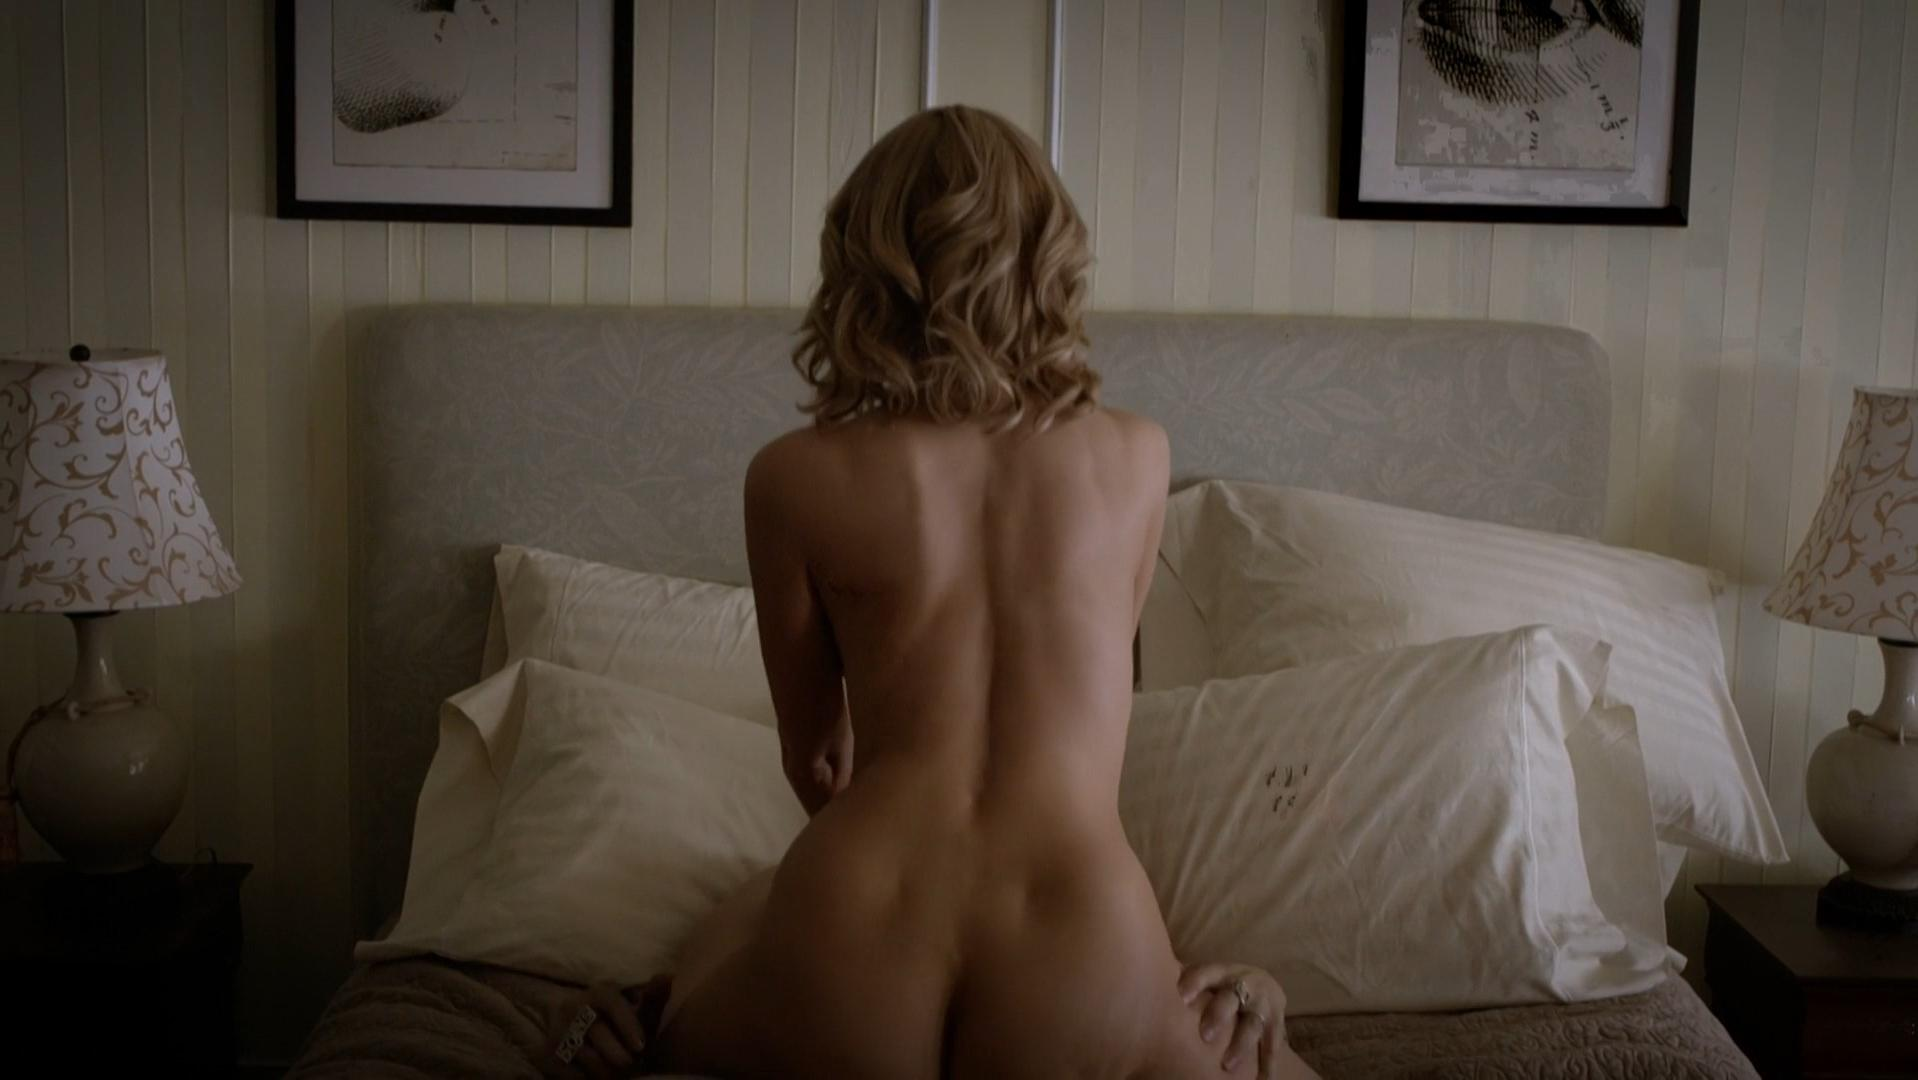 Nude Video Celebs Actress Kim Dickens